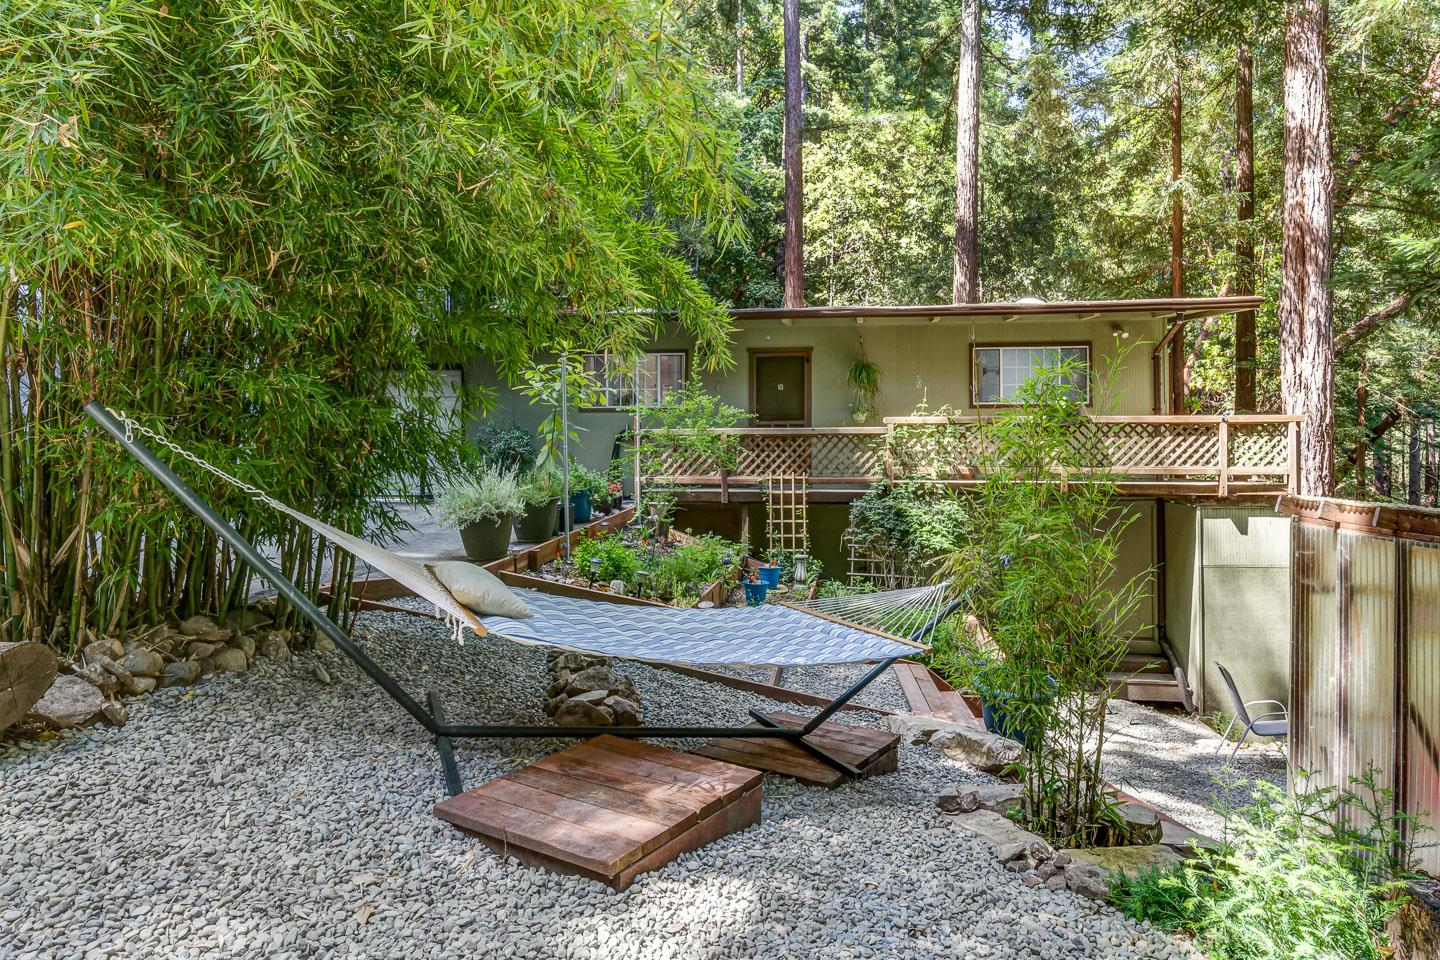 Surrounded by beautiful redwood trees is this charming, single-level home consisting of two parcels. Property includes a beautifully maintained garden with sunshine, a fun tree house, and a patio and deck perfect for relaxing or entertaining. Plus an amazing redwood grove for you to enjoy. Plenty of parking and room for an RV. Inside you'll find an open concept plan. Skylights, wood burning fireplace, double paned windows, and cork flooring in the bedrooms are just a few of the highlights. A one car extended garage space with bonus room/office, storage space under the home and whole house water filter system are included.  Well maintained road makes it easy to get to and just 5 minutes to Loch Lomond Recreation Area and less then 15 minutes to downtown Felton. Enjoy this home full time or as your quiet little getaway